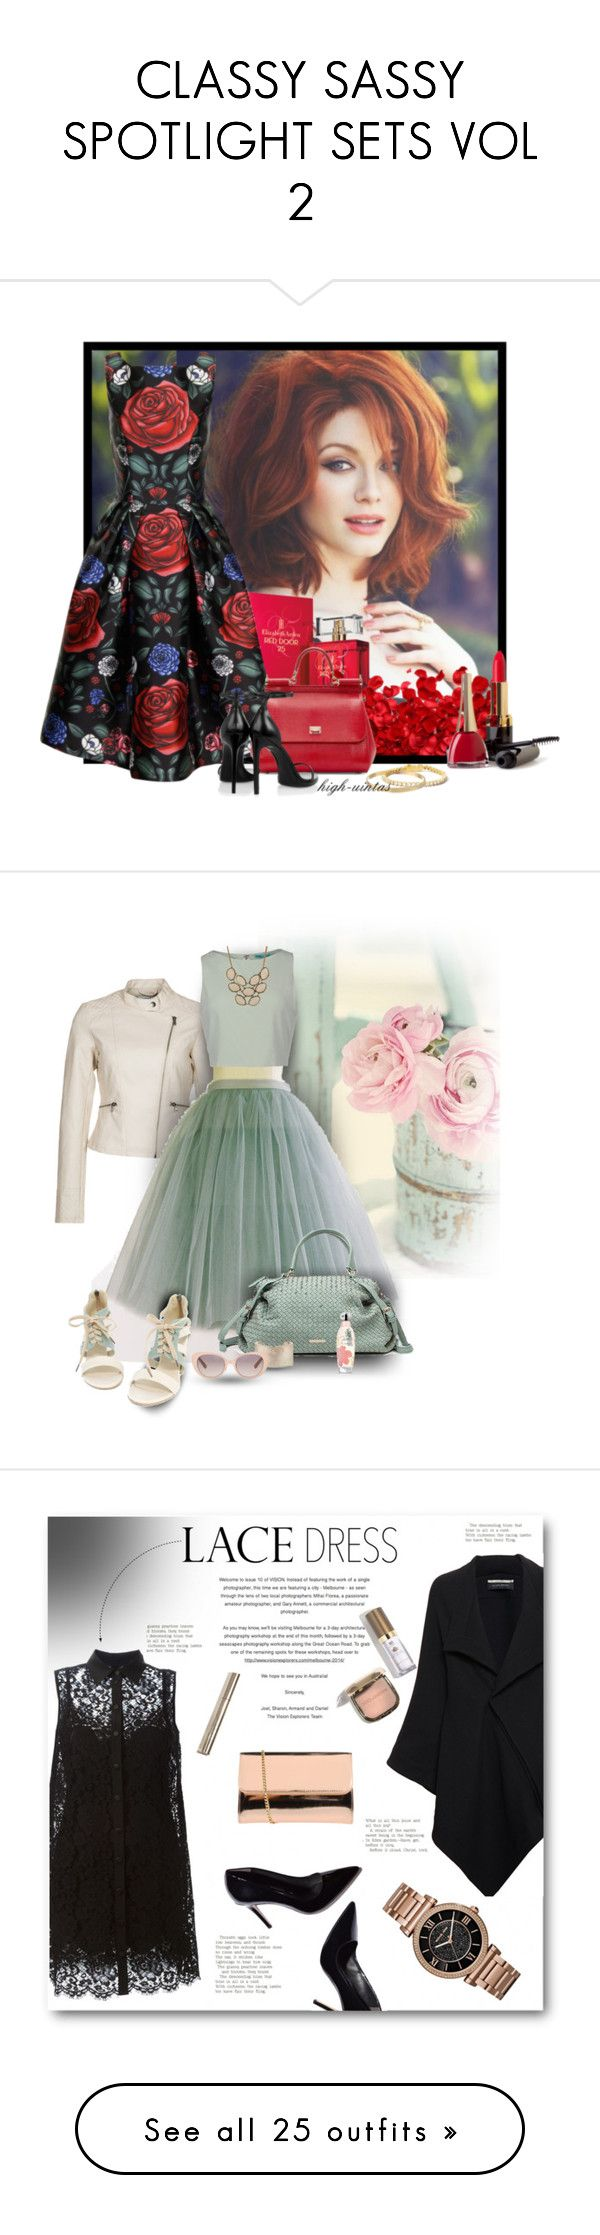 """""""CLASSY SASSY SPOTLIGHT SETS VOL 2"""" by mk-style ❤ liked on Polyvore featuring Kate Spade, Elizabeth Arden, Chi Chi, Dolce&Gabbana, Yves Saint Laurent, Henri Bendel, Vero Moda, Alice + Olivia, Urban Expressions and Ruby Rocks"""